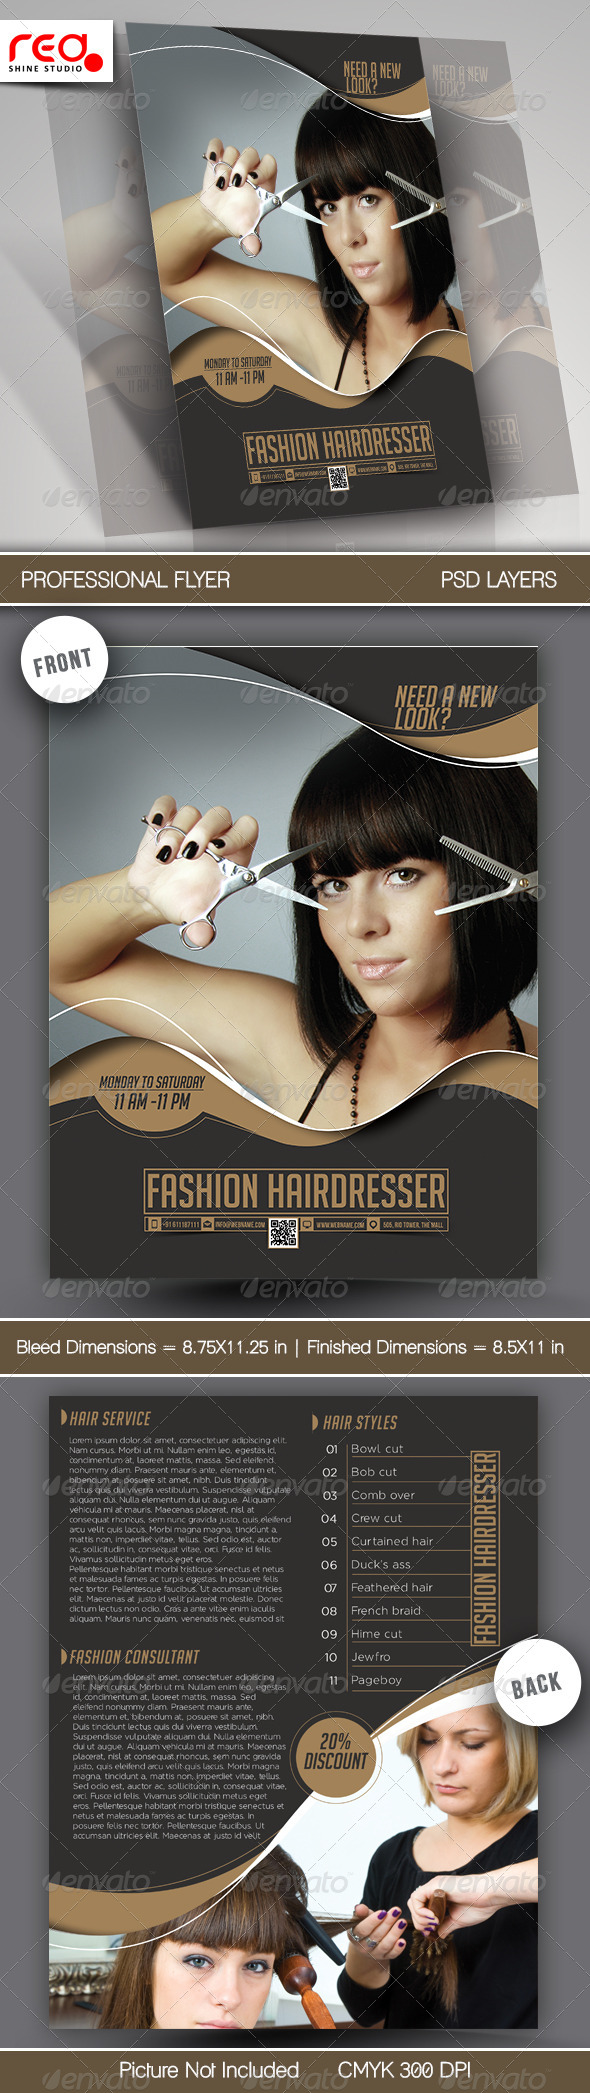 GraphicRiver Fashion Hairdresser Flyer & Poster Template 7636905